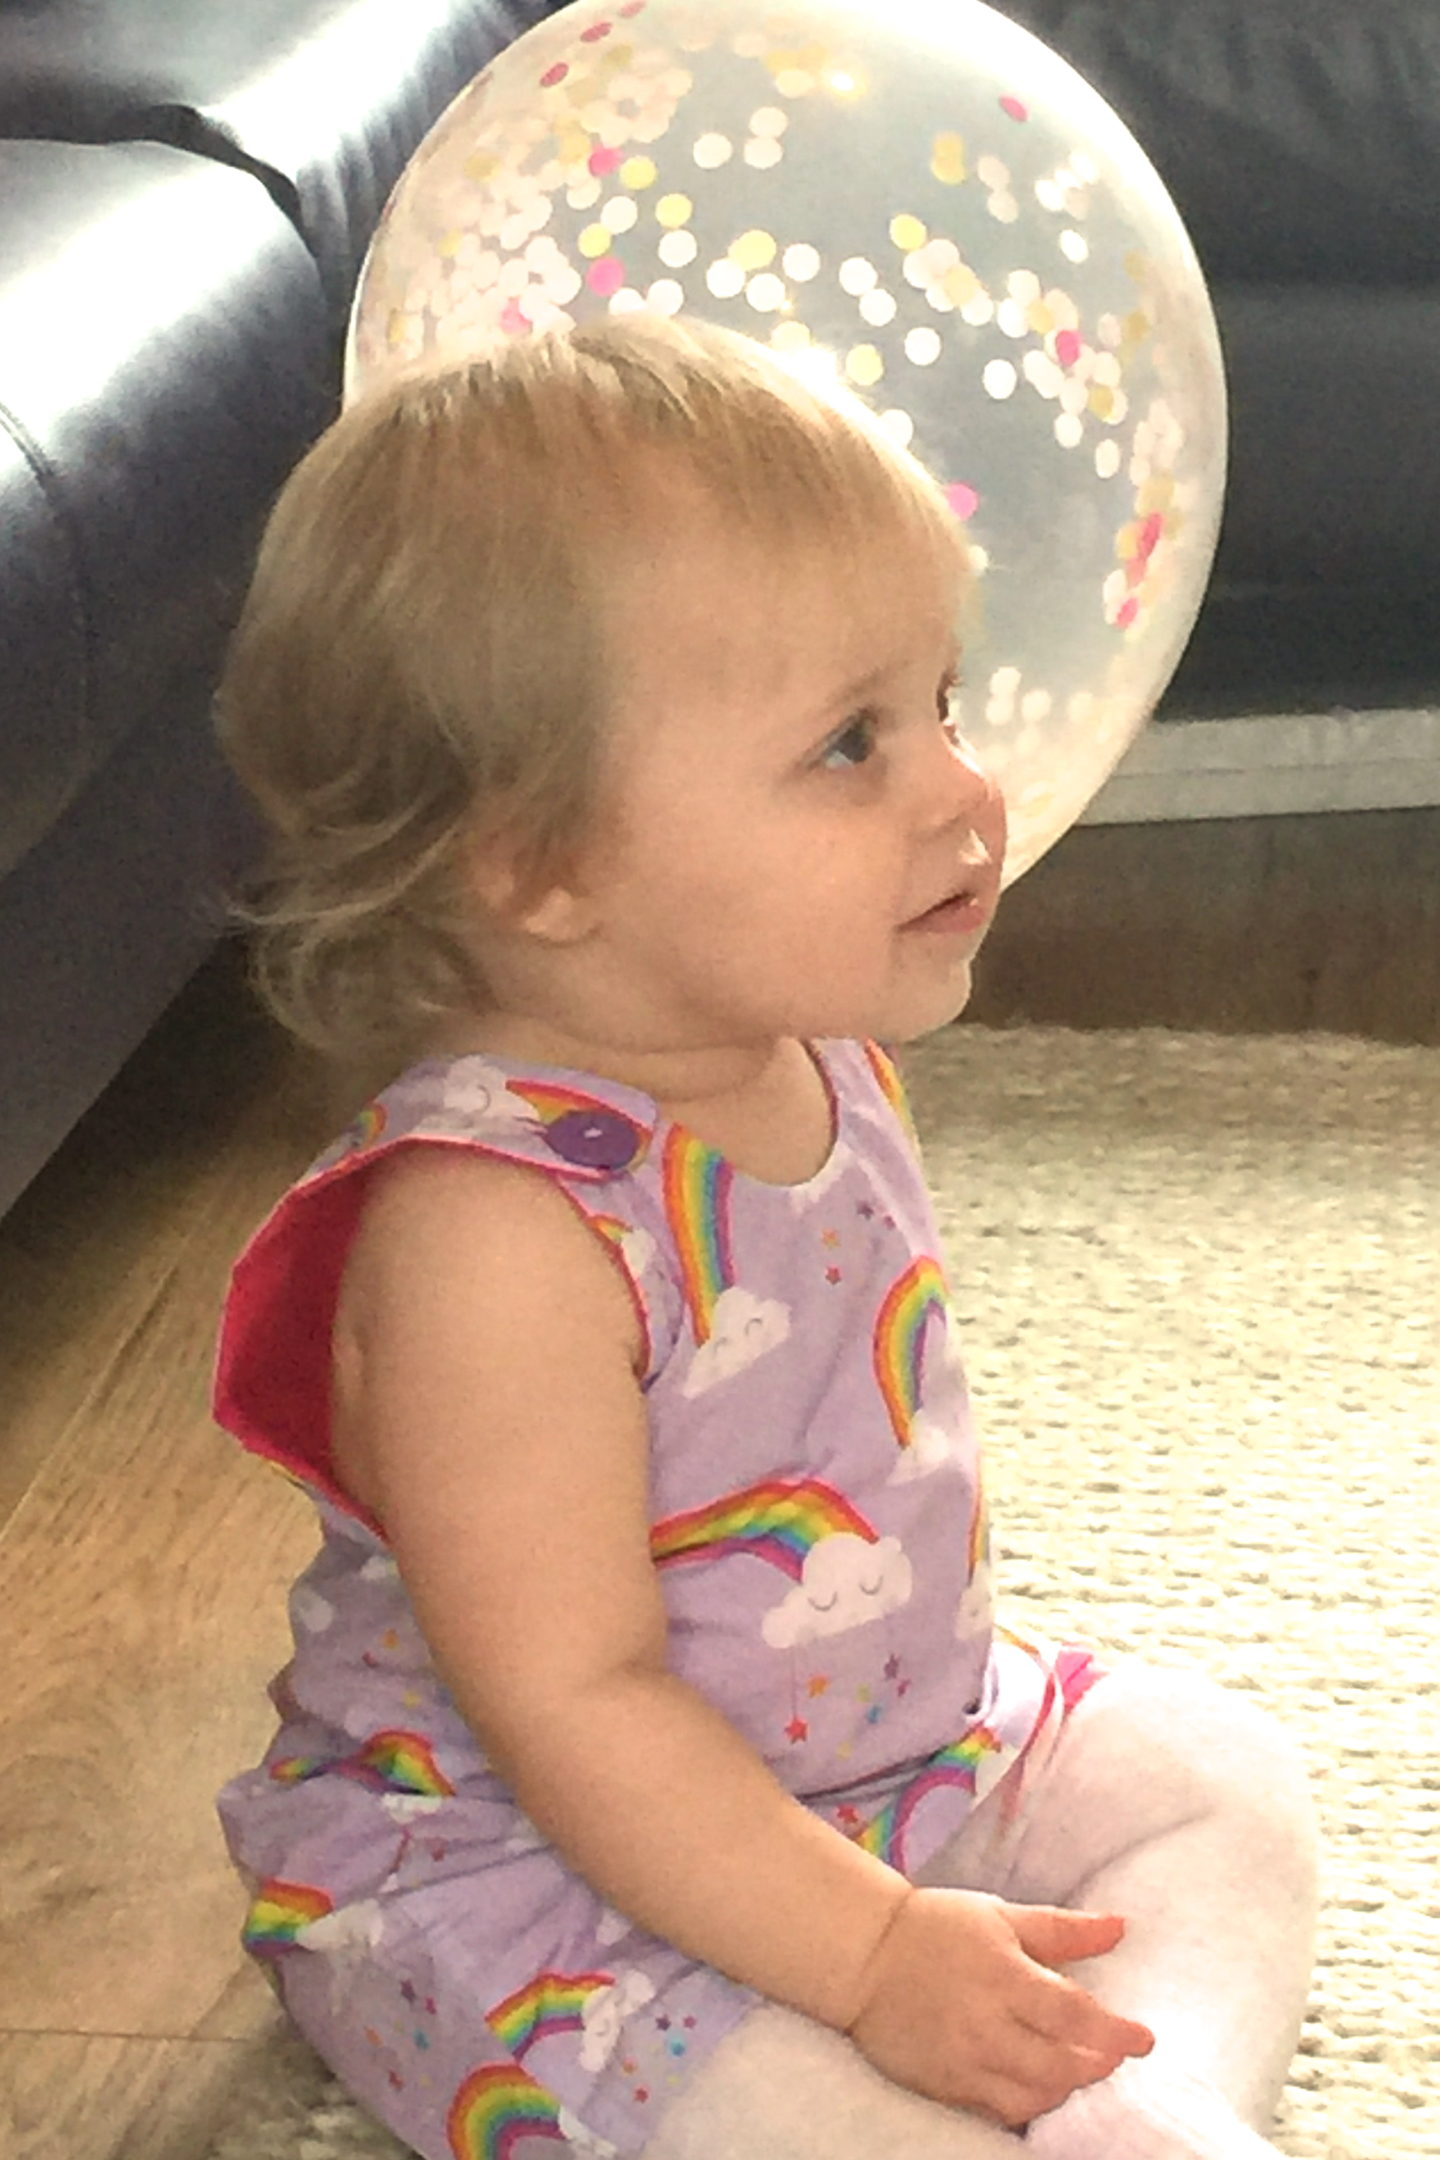 one year old in party dress sitting on the floor, holding a balloon